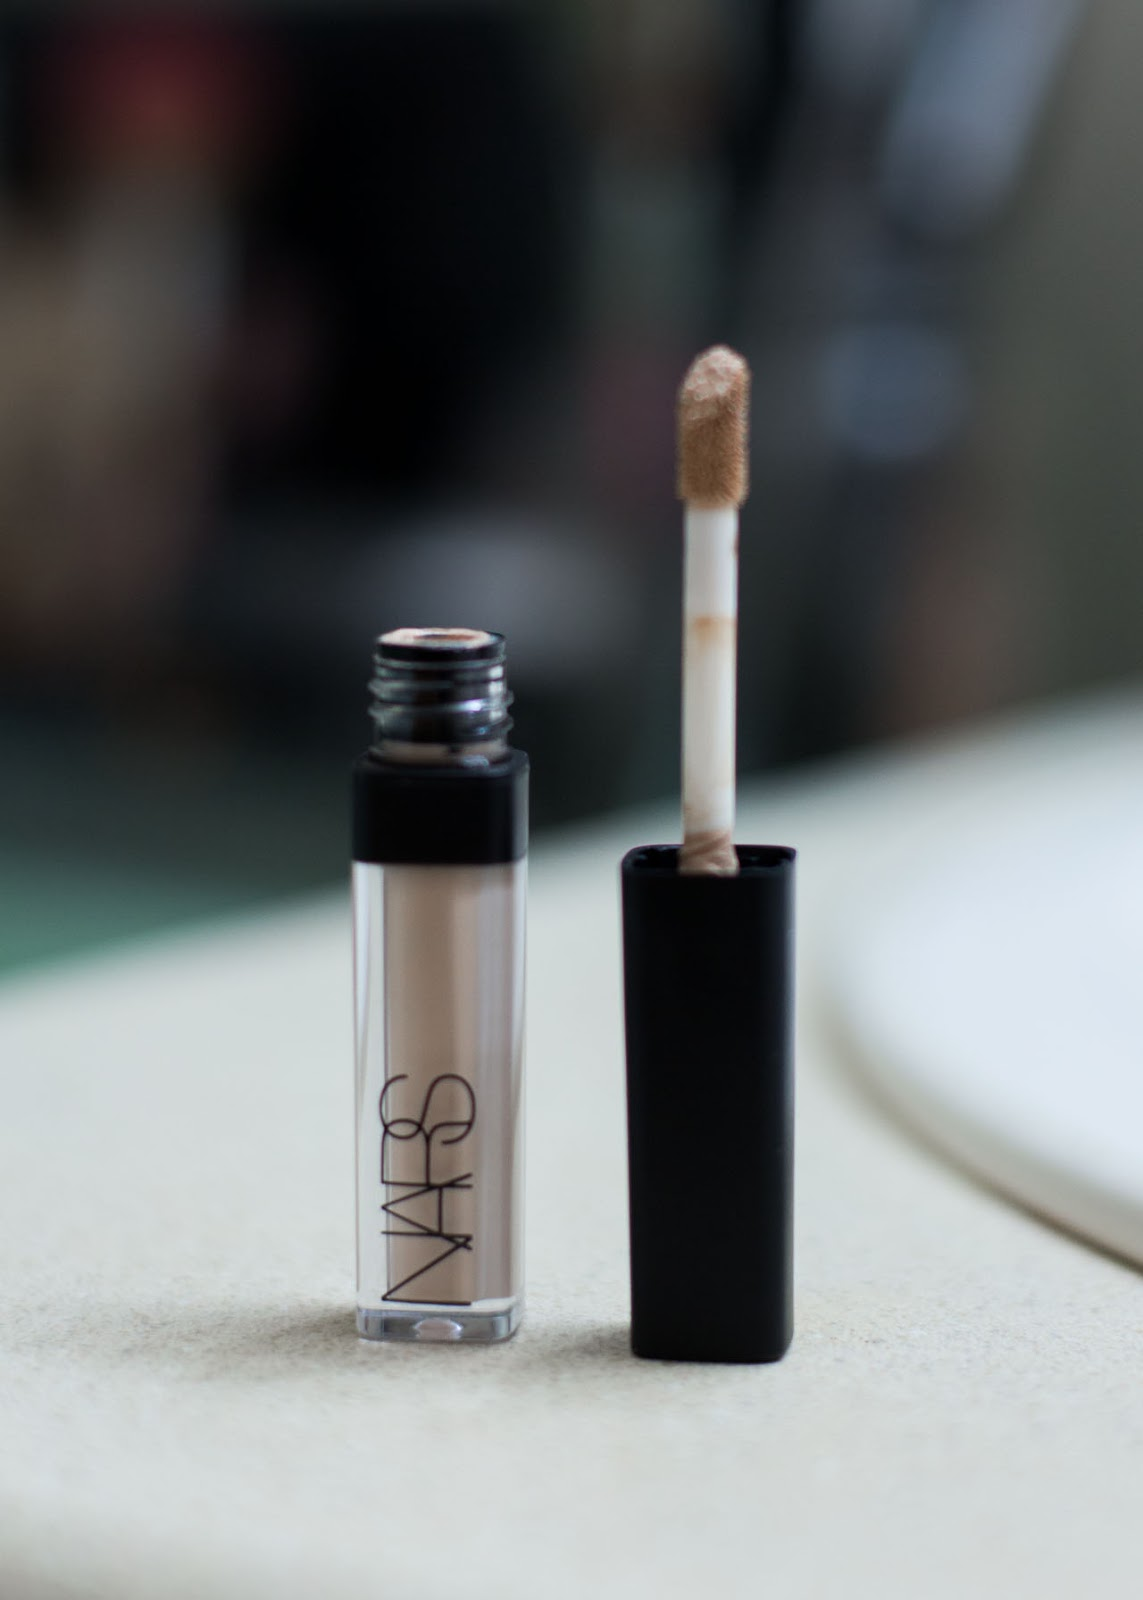 Fall Winter make-up routine - Favorite beauty products - Nars creamy radiant concealer